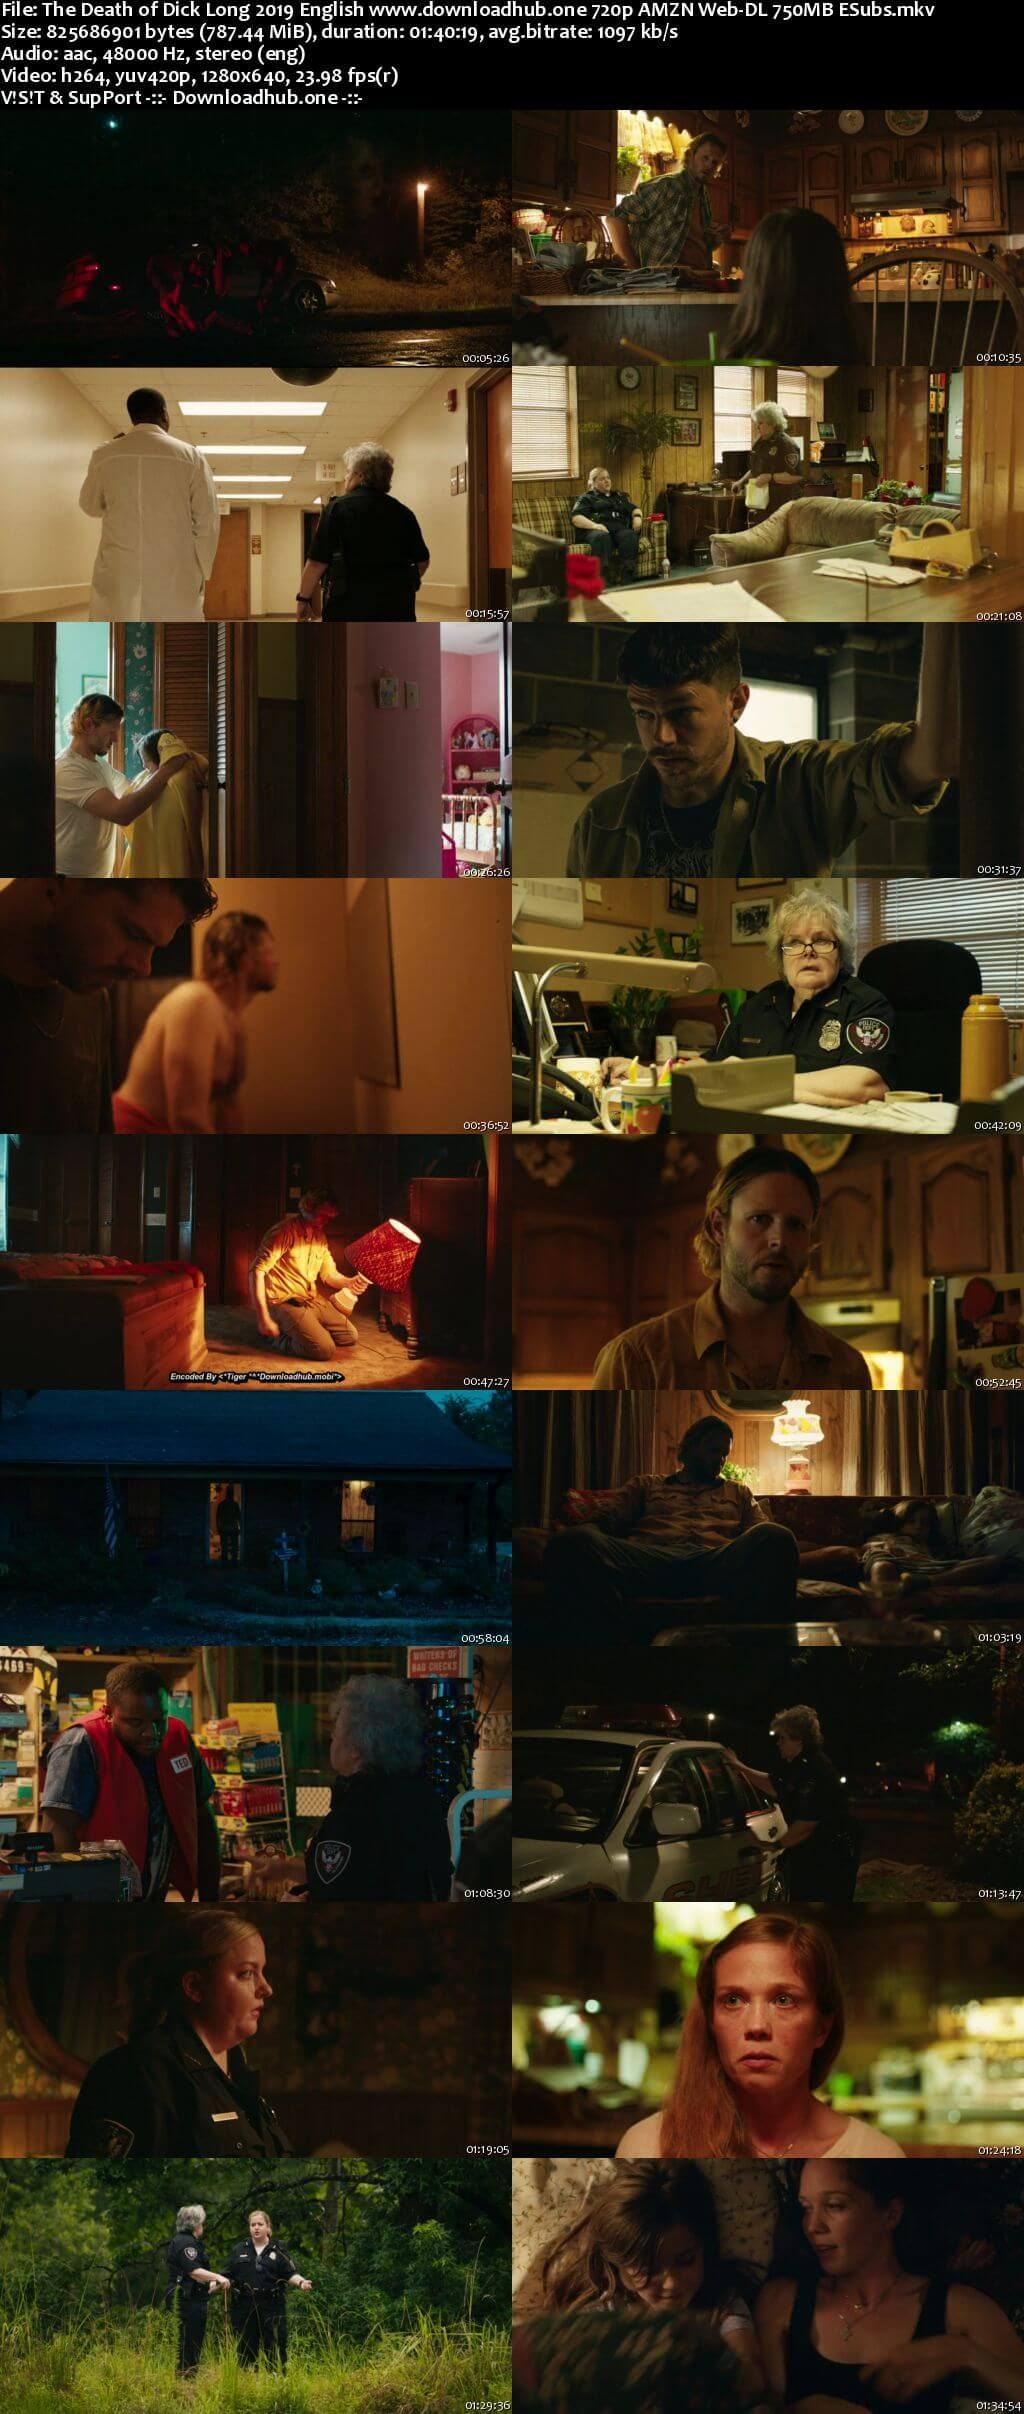 The Death of Dick Long 2019 English 720p AMZN Web-DL 750MB ESubs